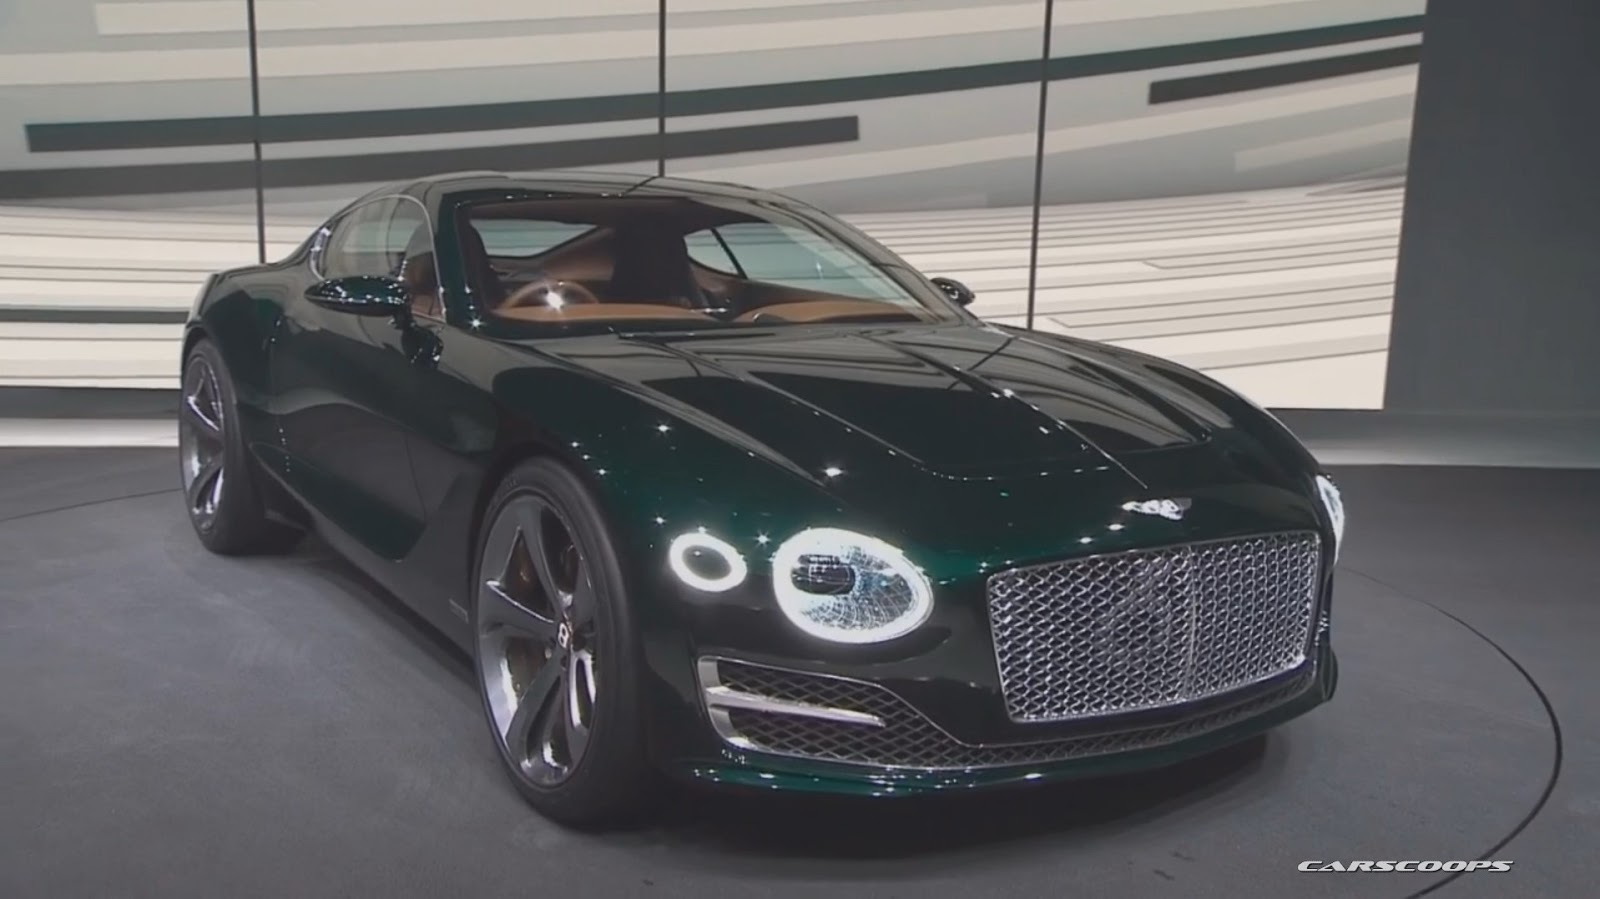 bentley 39 s new exp 10 speed 6 sports coupe concept hints at new series updated carscoops. Black Bedroom Furniture Sets. Home Design Ideas